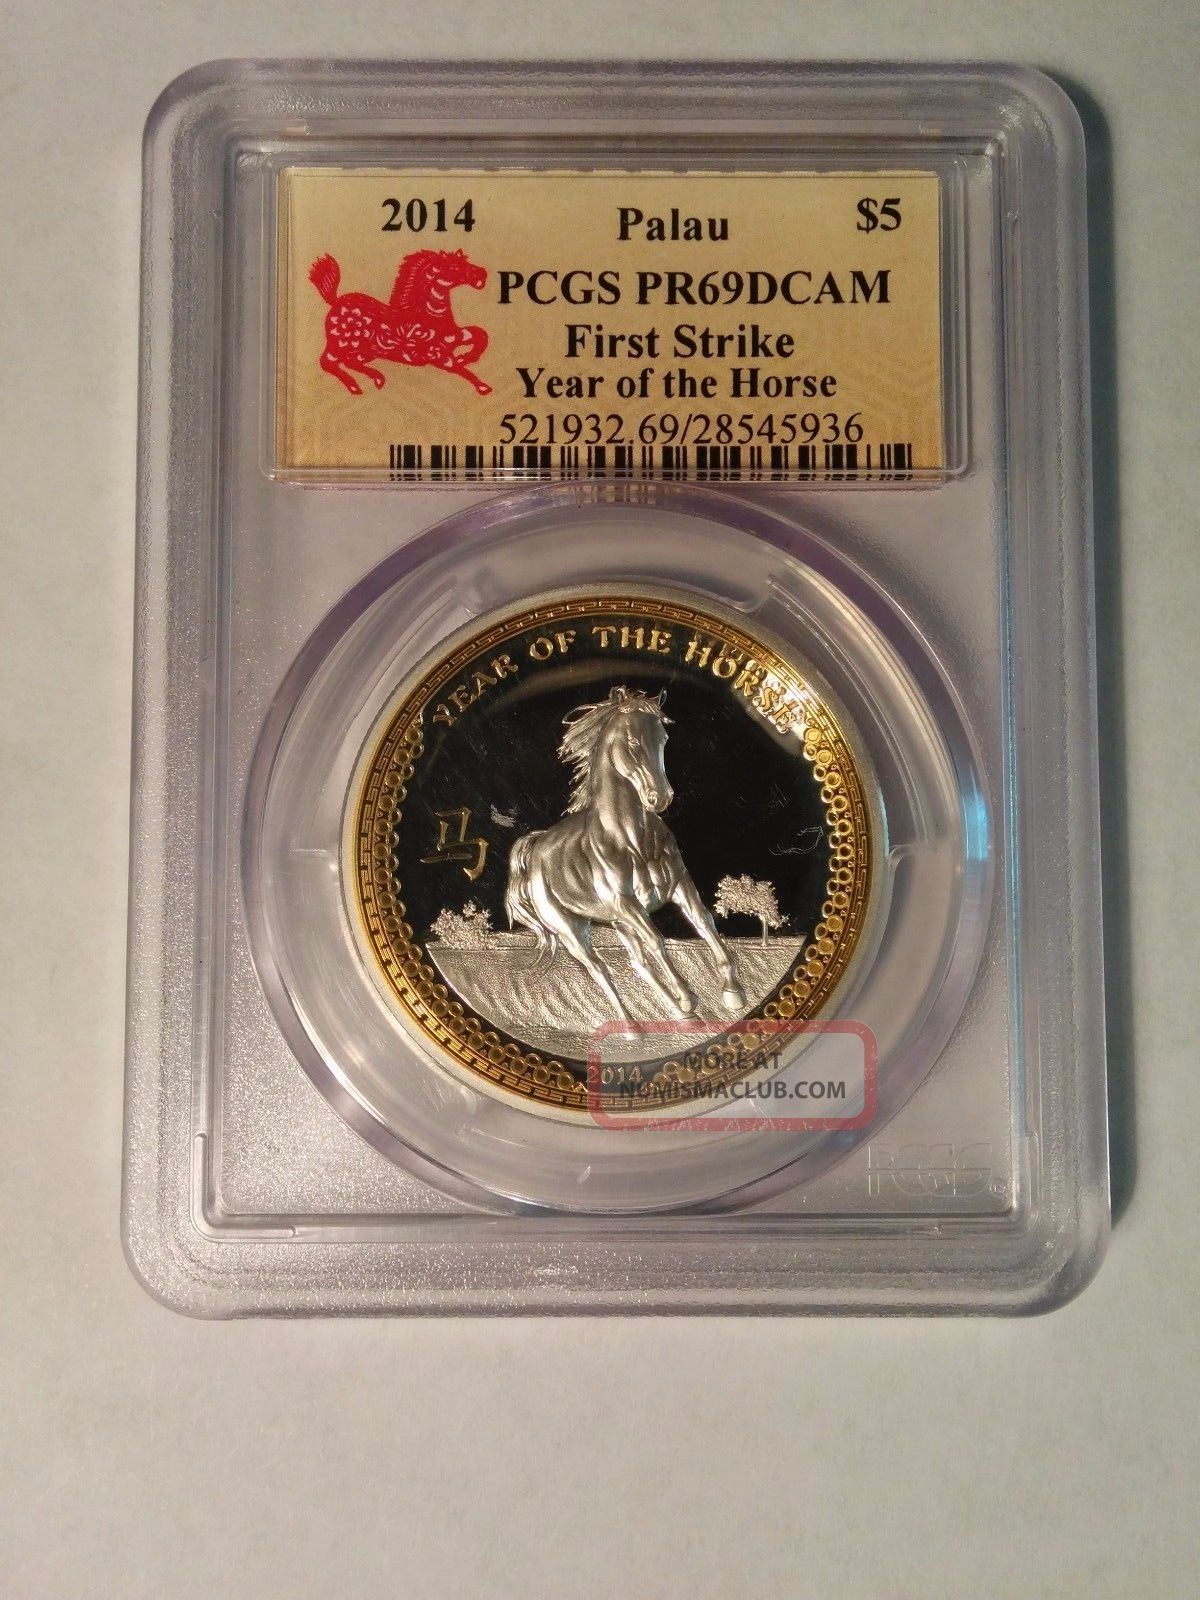 2014 Palau 5 Gilt Horse 1 Oz Silver Proof High Relief